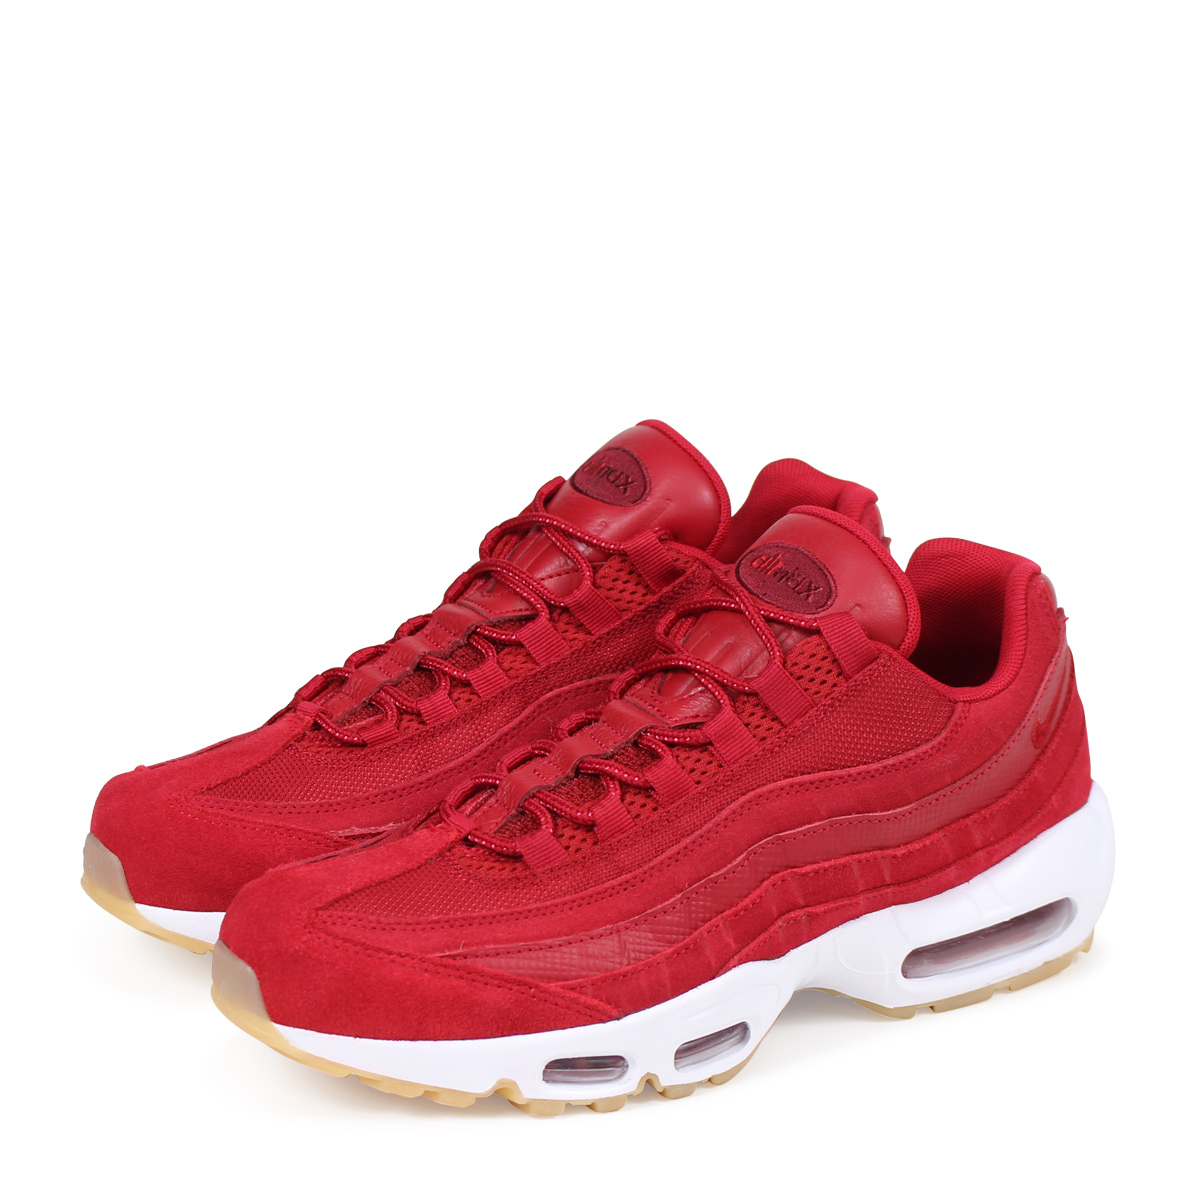 NIKE AIR MAX 95 PREMIUM Kie Ney AMAX 95 sneakers men 538,416 602 red [load planned Shinnyu load in reservation product 512 containing] [185]